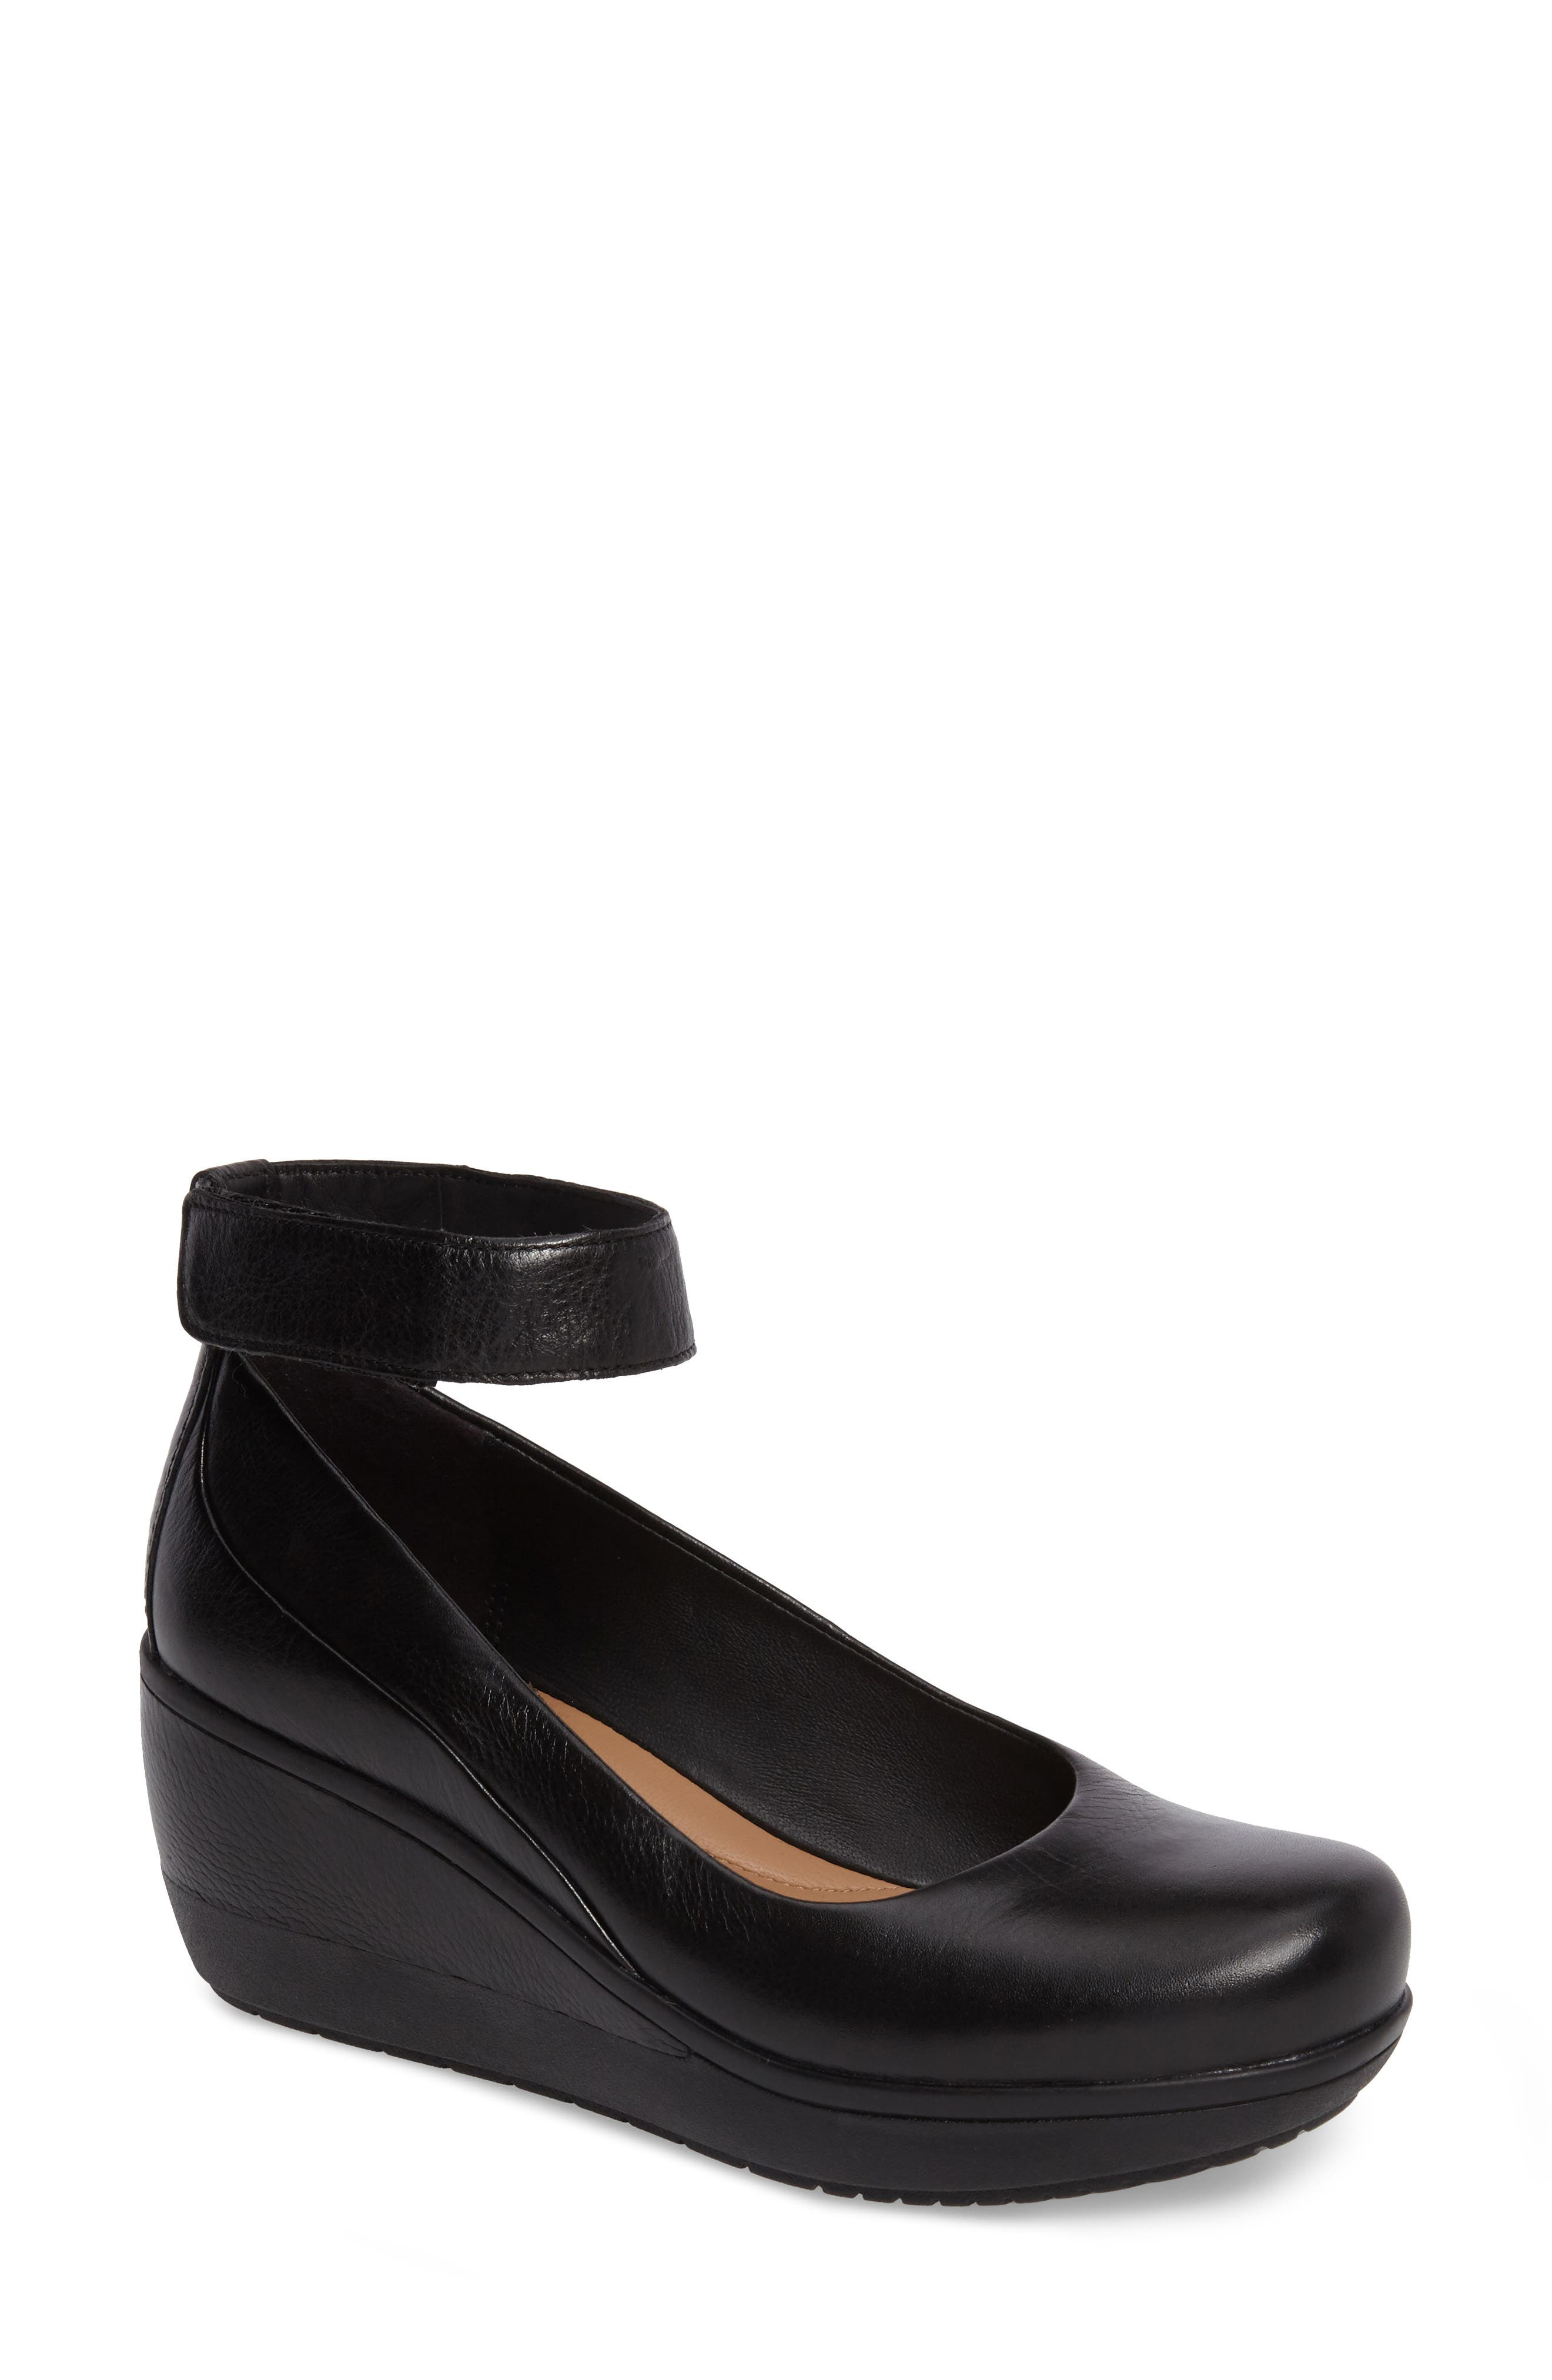 Wynnmere Fox Ankle Strap Pump,                             Main thumbnail 1, color,                             BLACK LEATHER